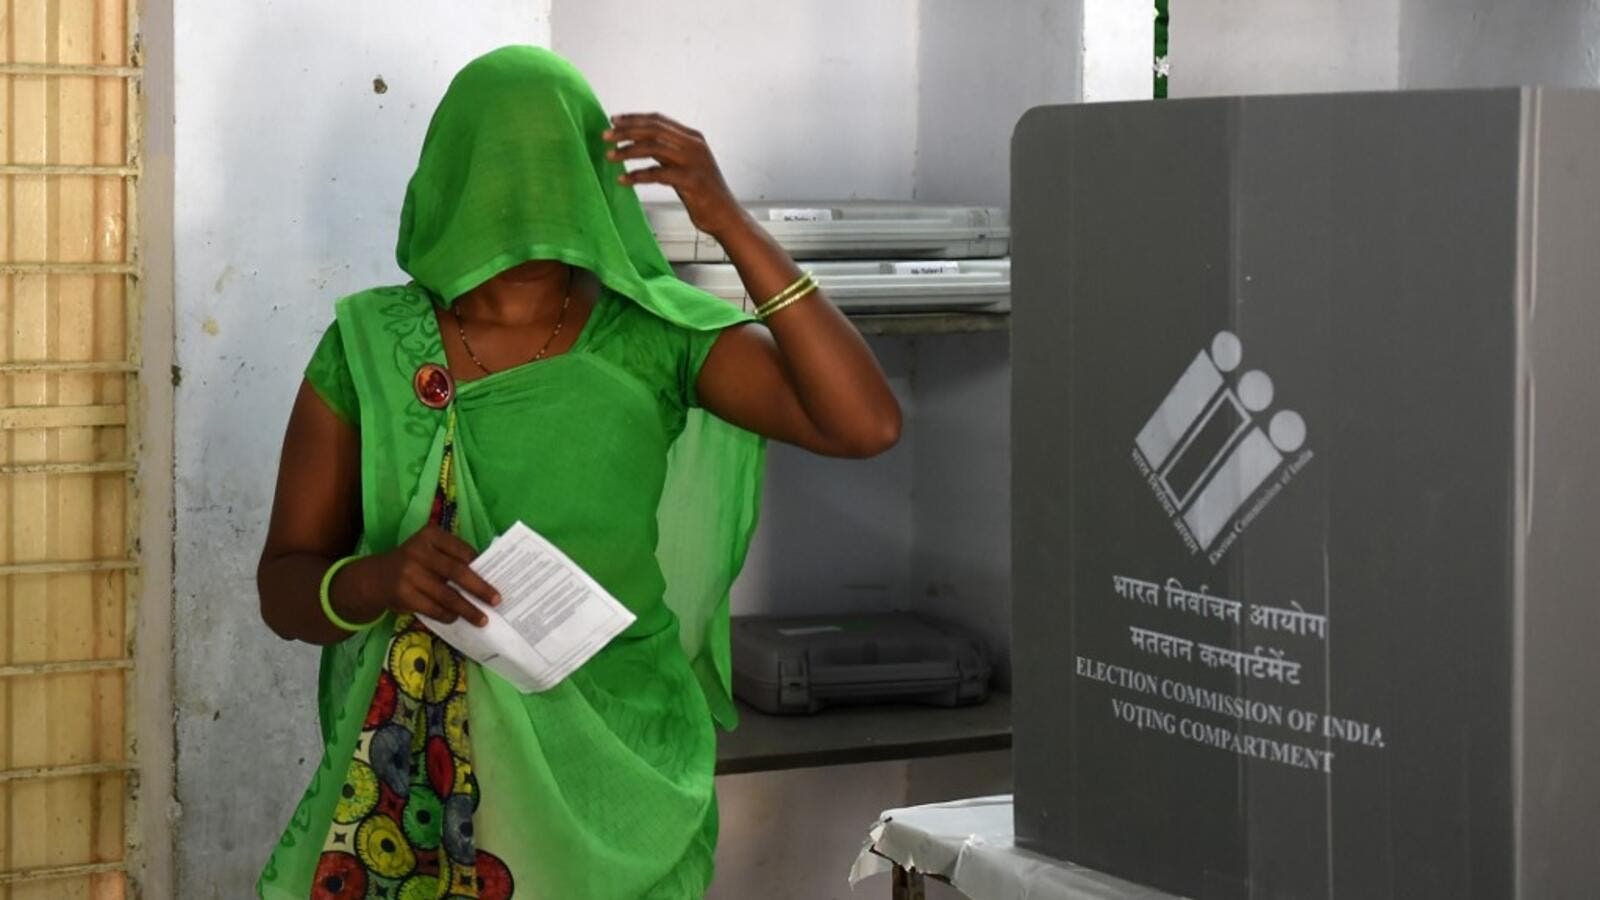 An Indian woman leaves after casting her vote during the third phase of general elections at a polling station in Ahmedabad on April 23, 2019. (AFP/ File)